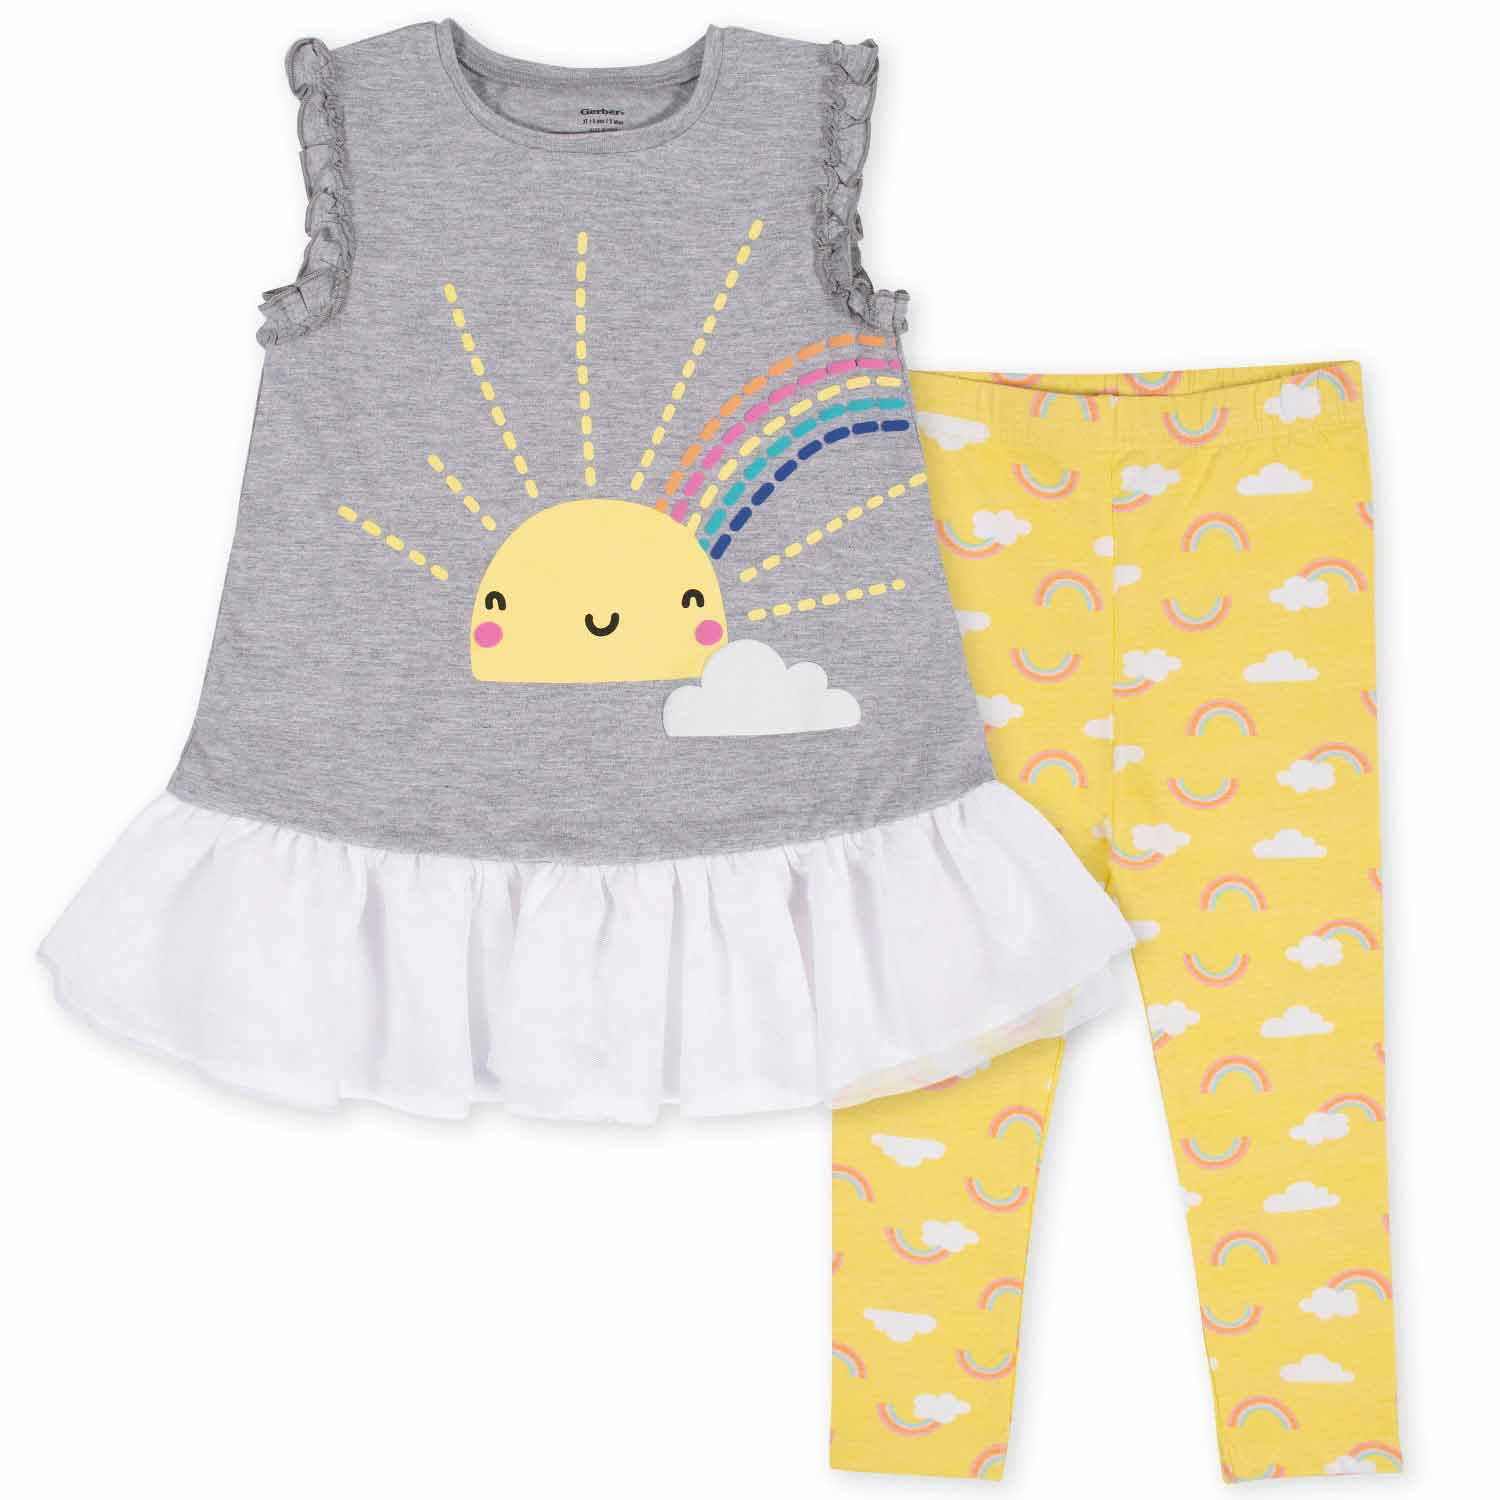 2-Piece Toddler Girls' Sunshine Ruffled Tunic and Legging Set